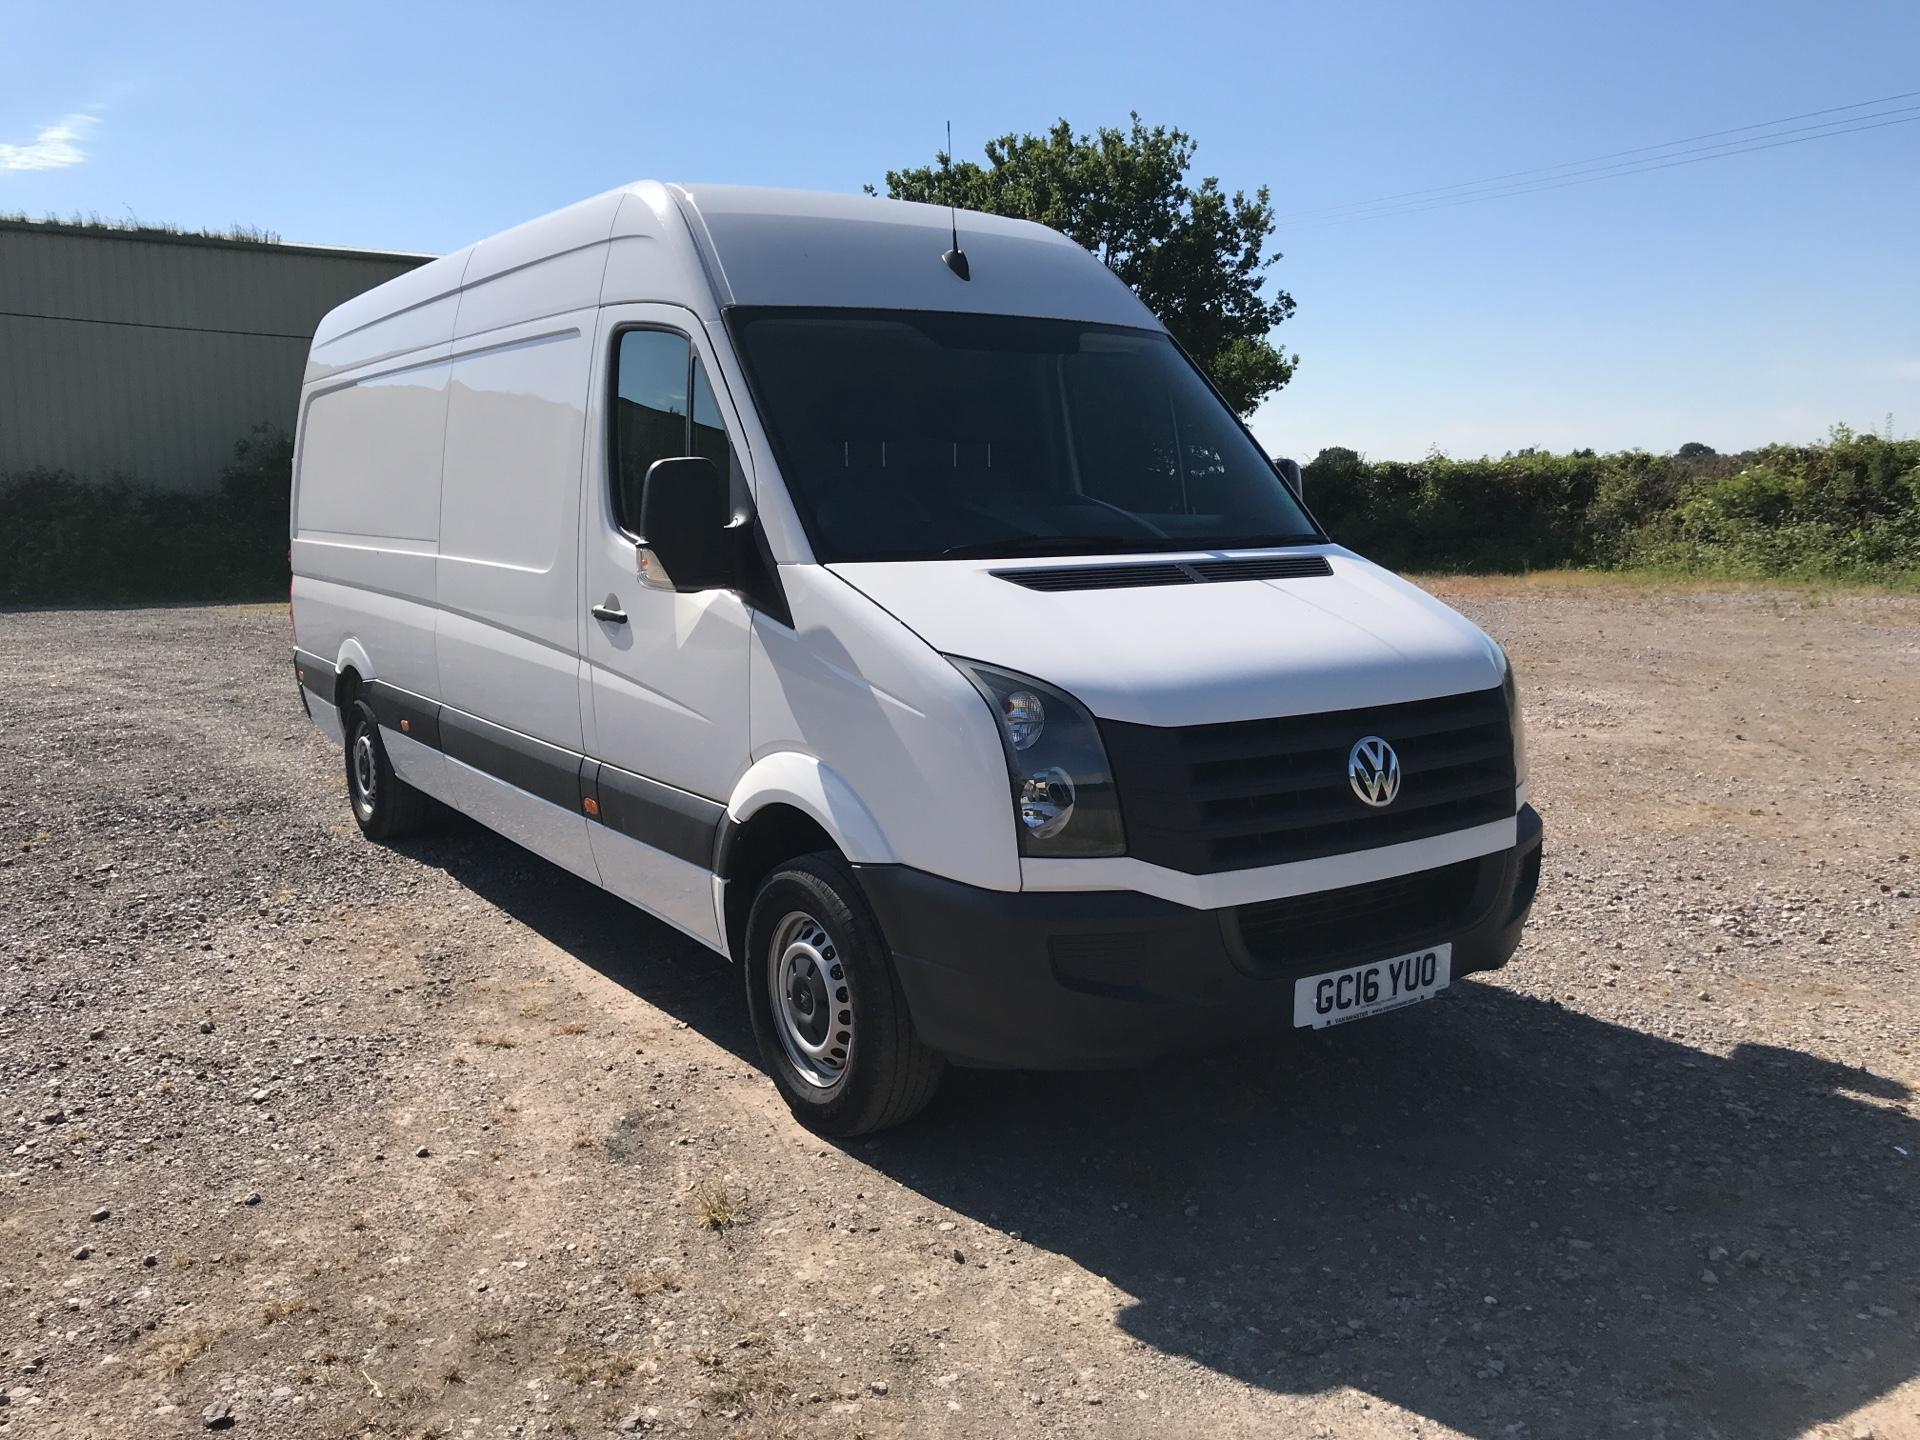 2016 Volkswagen Crafter 2.0 Tdi 136Ps High Roof Van (GC16YUO)